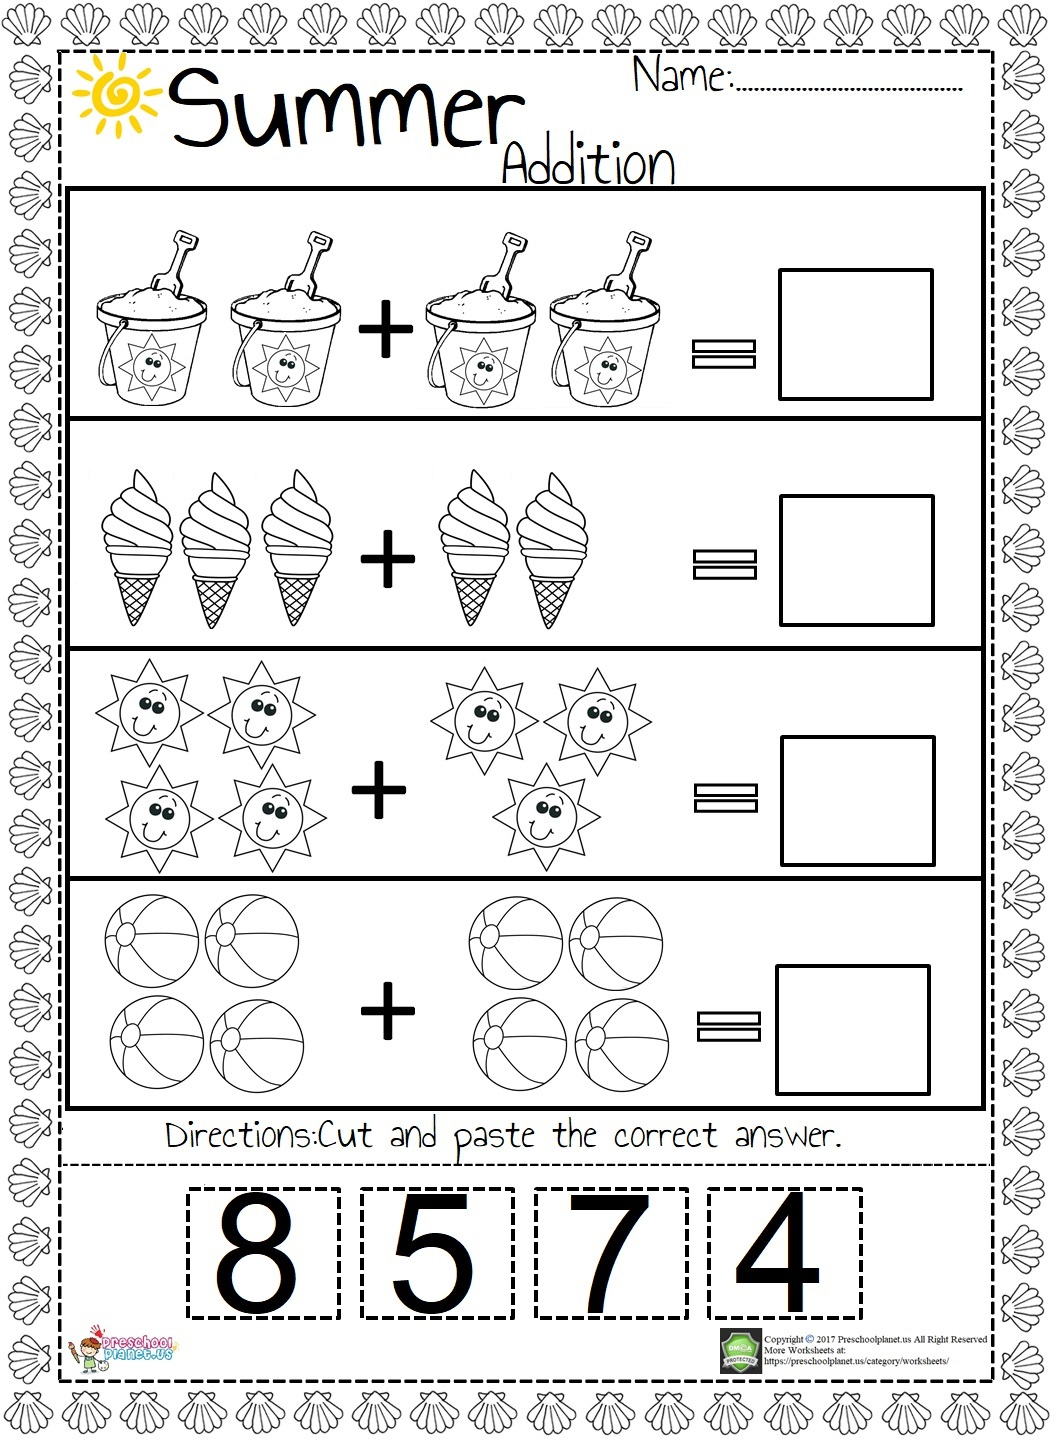 Summer Addition Worksheet